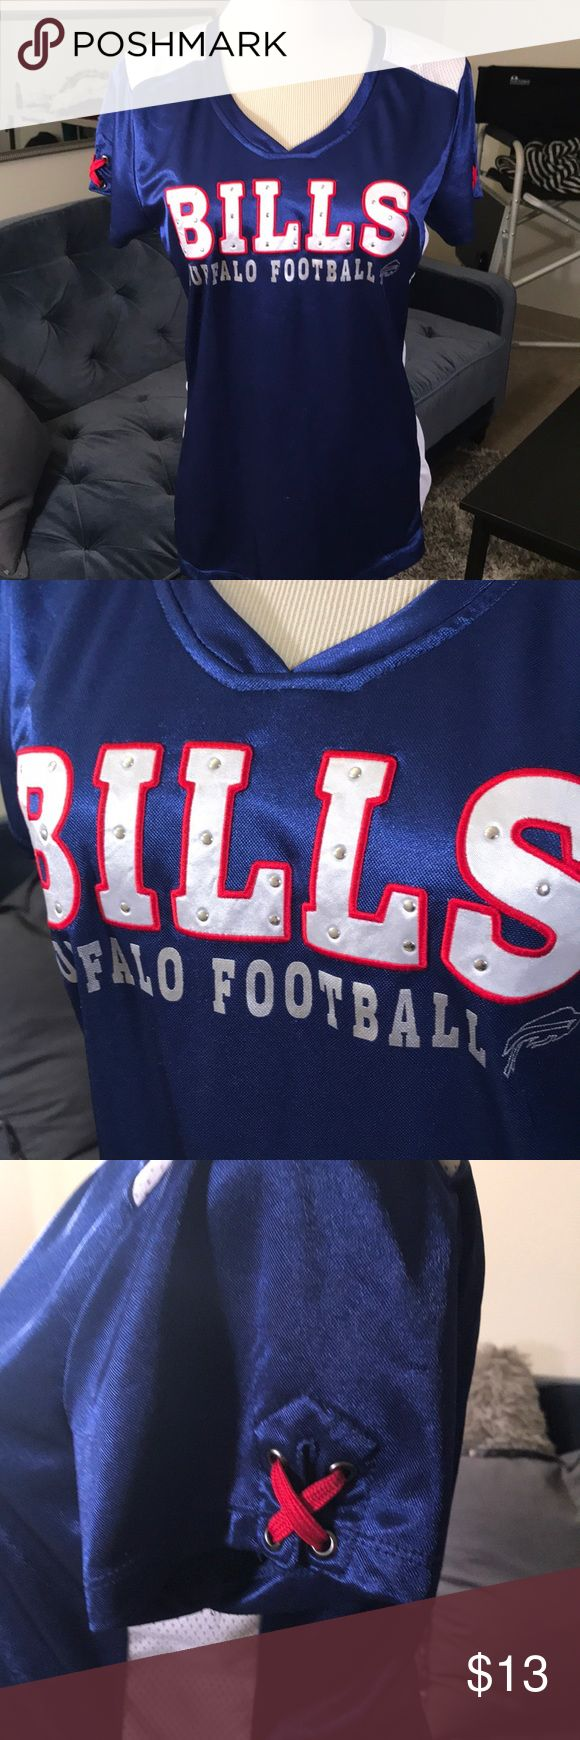 Studded Buffalo BILLS Jersey 🏈 Studded BUFFALO BILLS women's jersey, size medium. Fits like a small. Worn once for a game. NFL Apparel Tops Tees - Short Sleeve